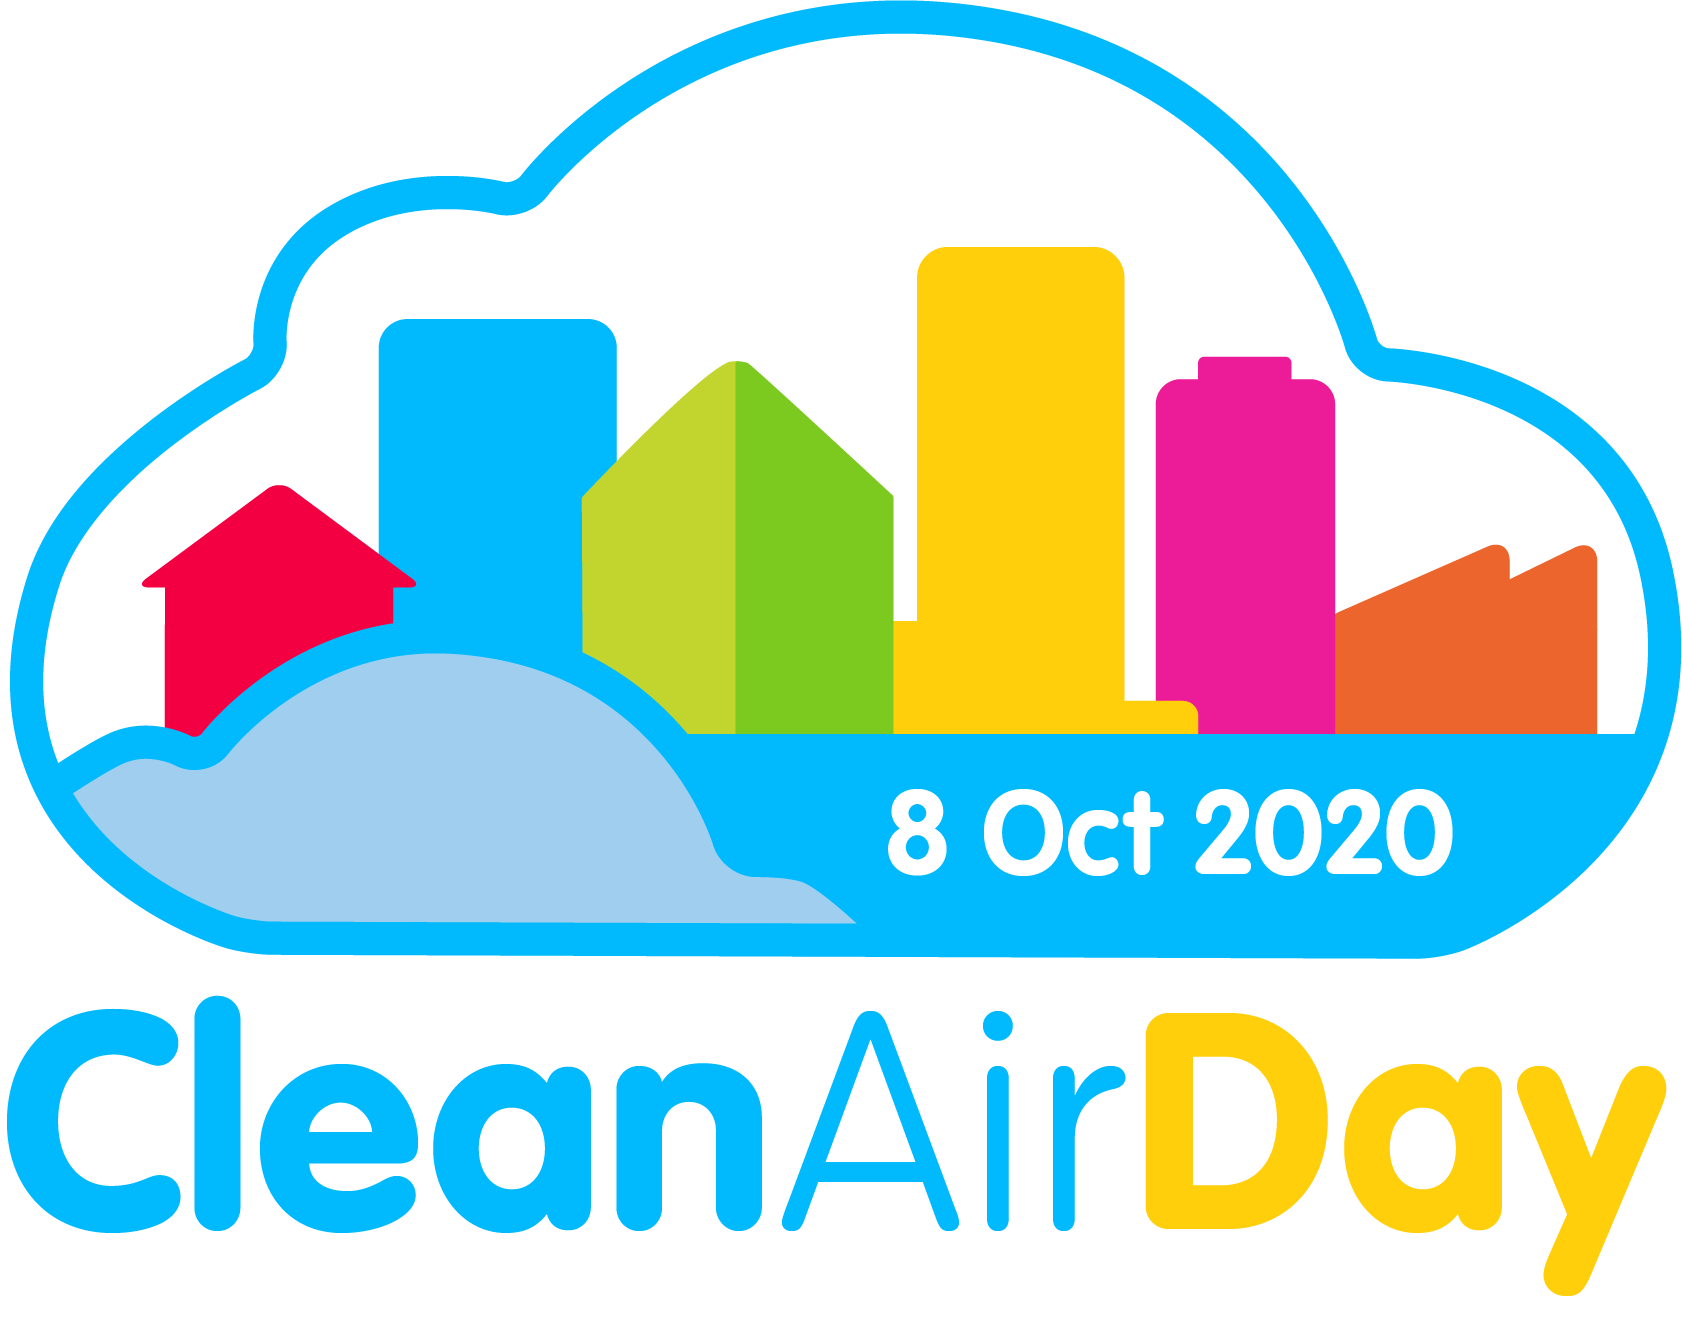 Clean Air Day - the UK's largest clean air campaign